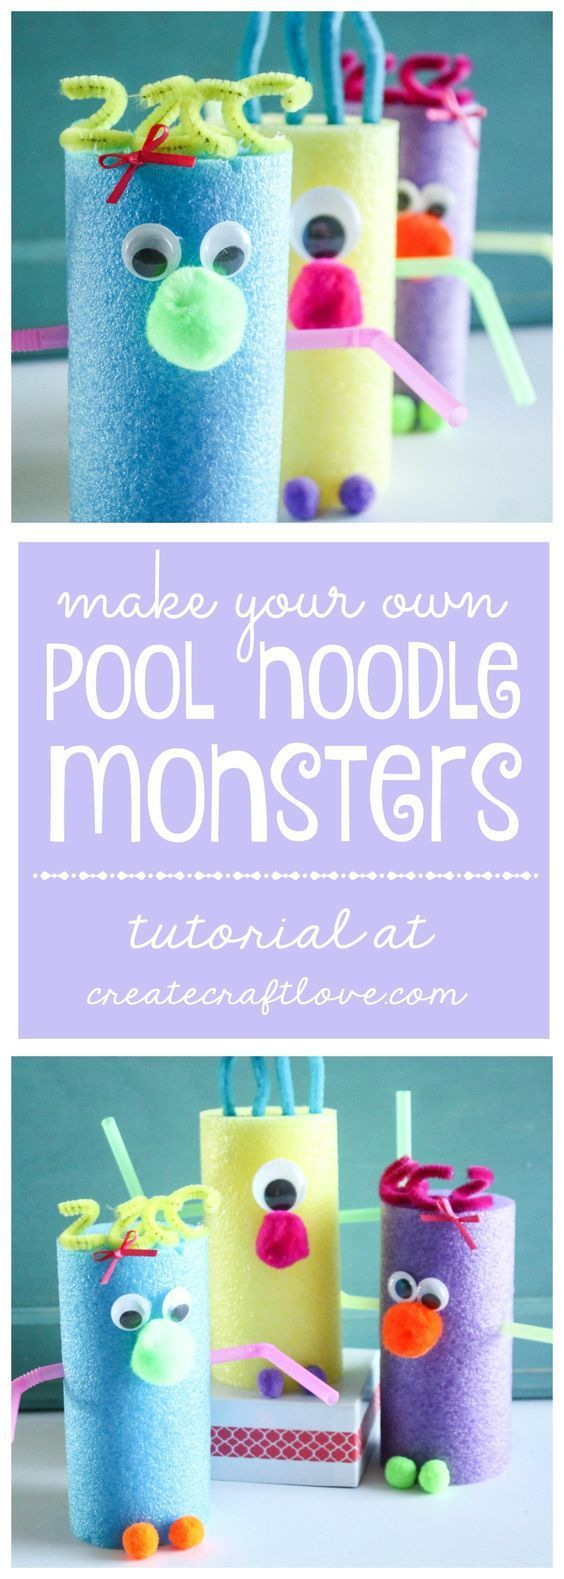 These Pool Noodle Monsters are a great kids craft for a summer day! via createcraftlove.com